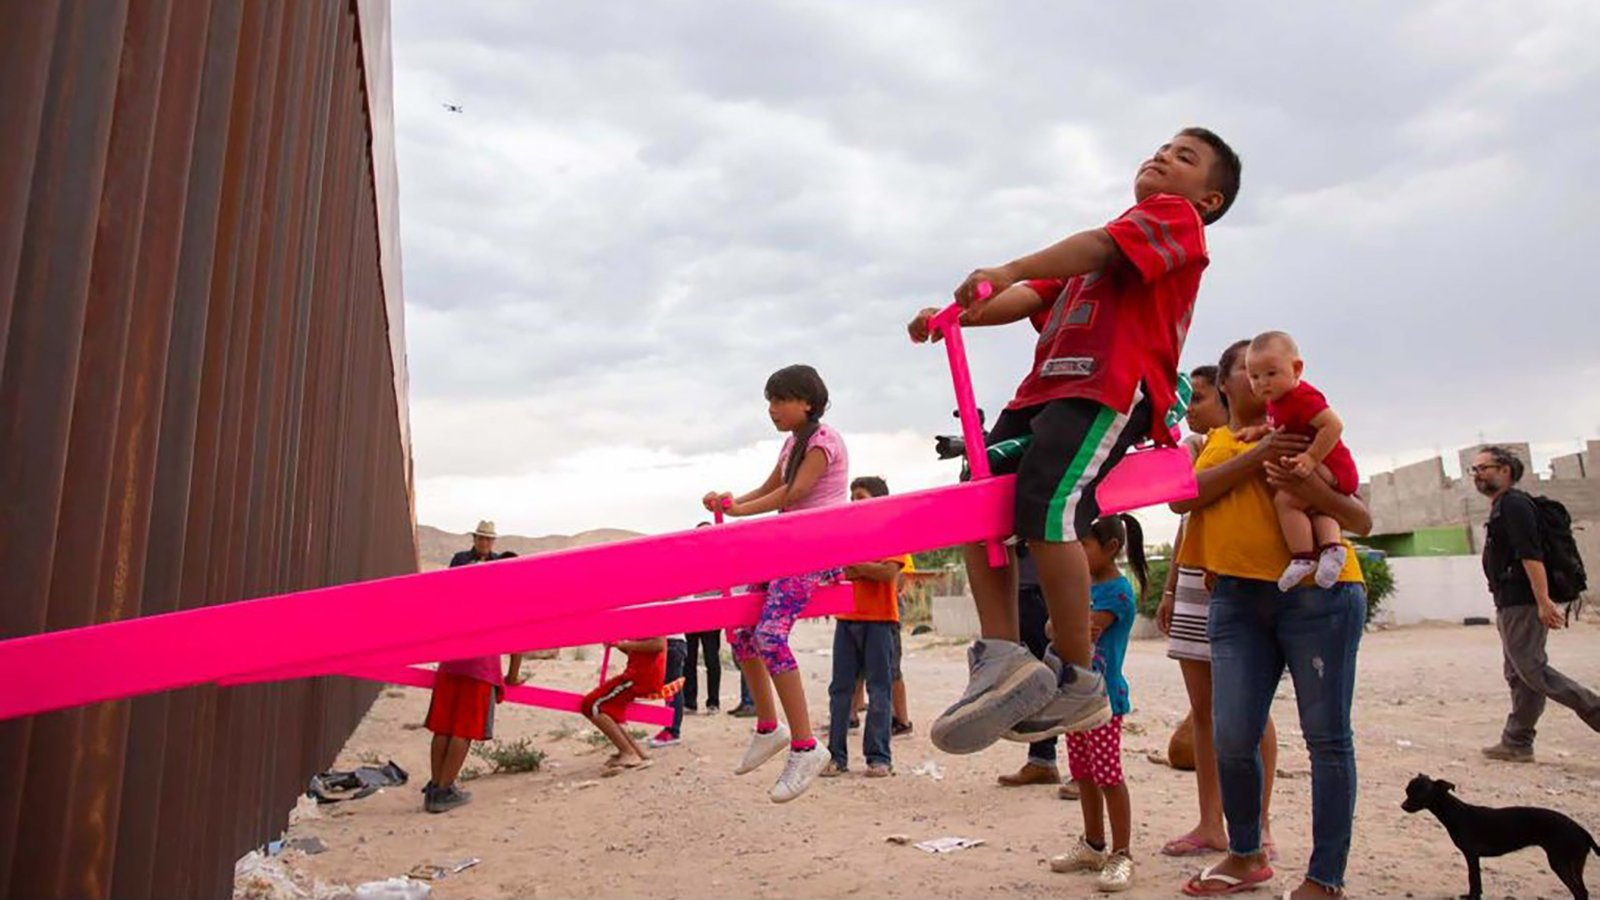 """The """"Teeter-Totter Wall"""" allows children to play with each other in New Mexico and Mexico. (Credit: University of California)"""